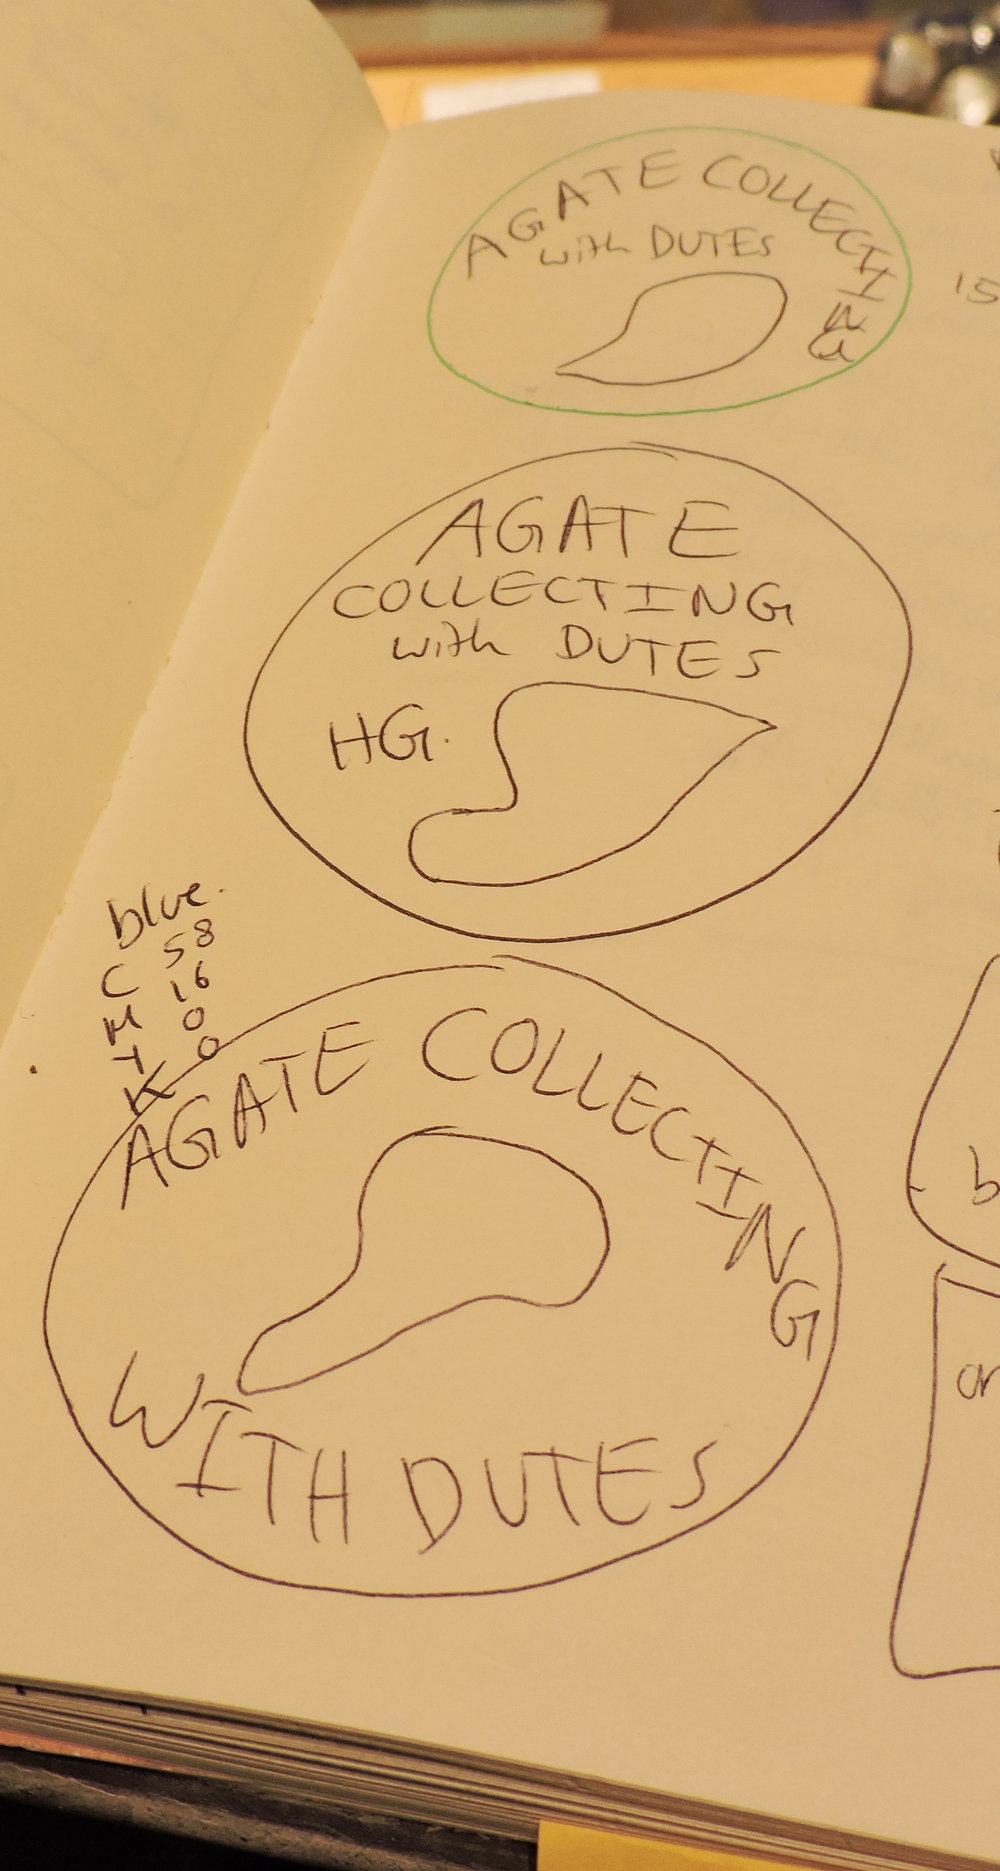 Working on the early drafts of Agate Collecting with Dutes started in May 2016.